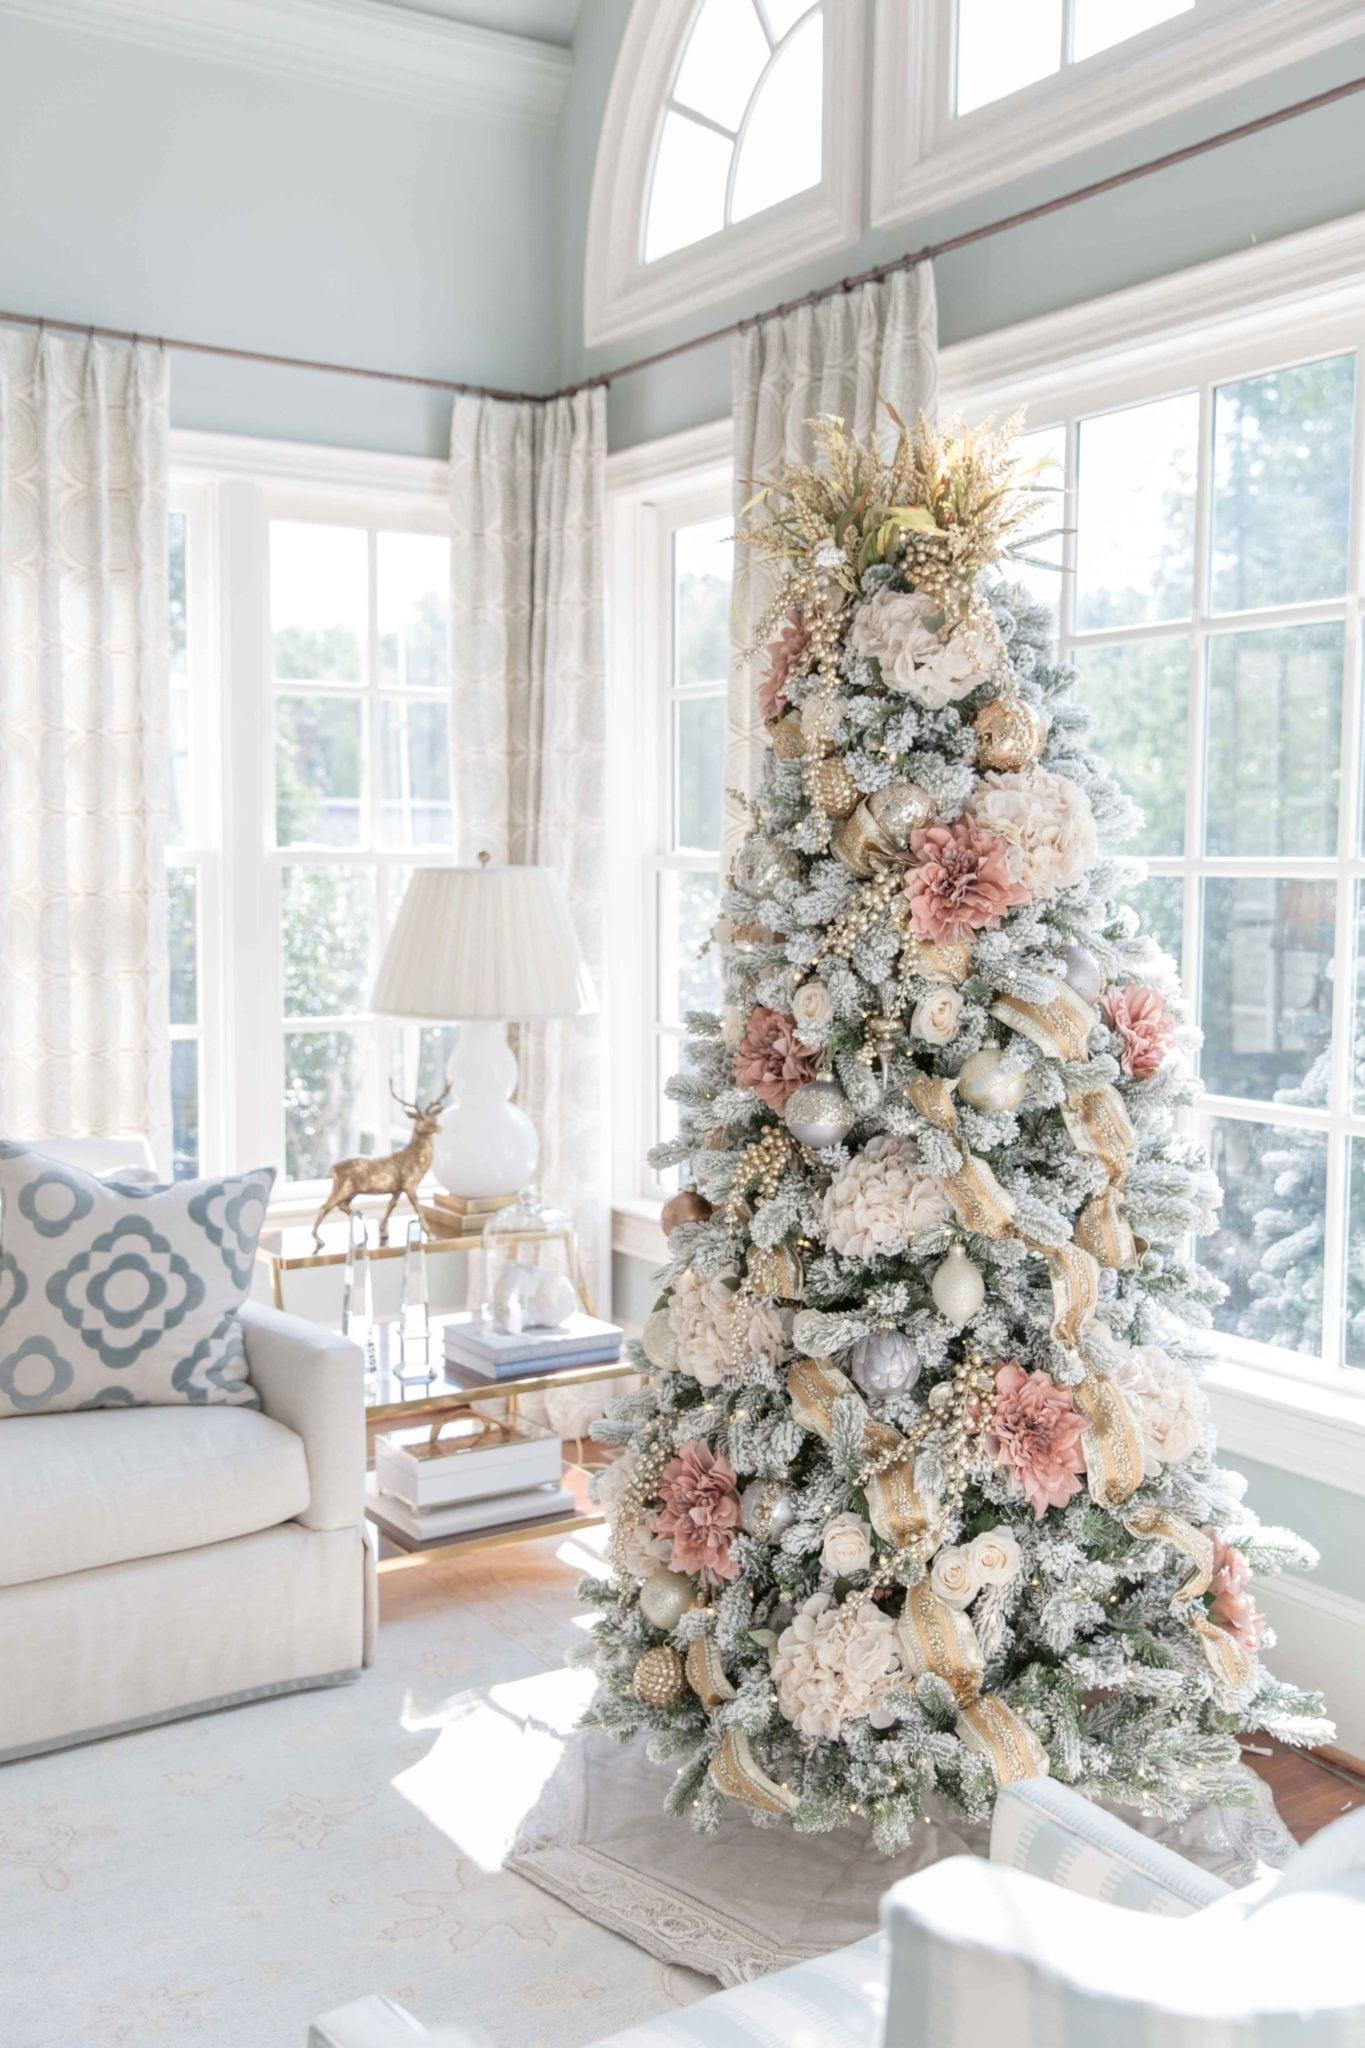 Decorate this Christmas with new color schemes! Pink flowers, gold ribbon and a fluffy gold tree topper! A somewhat rustic tree that's still very elegant!